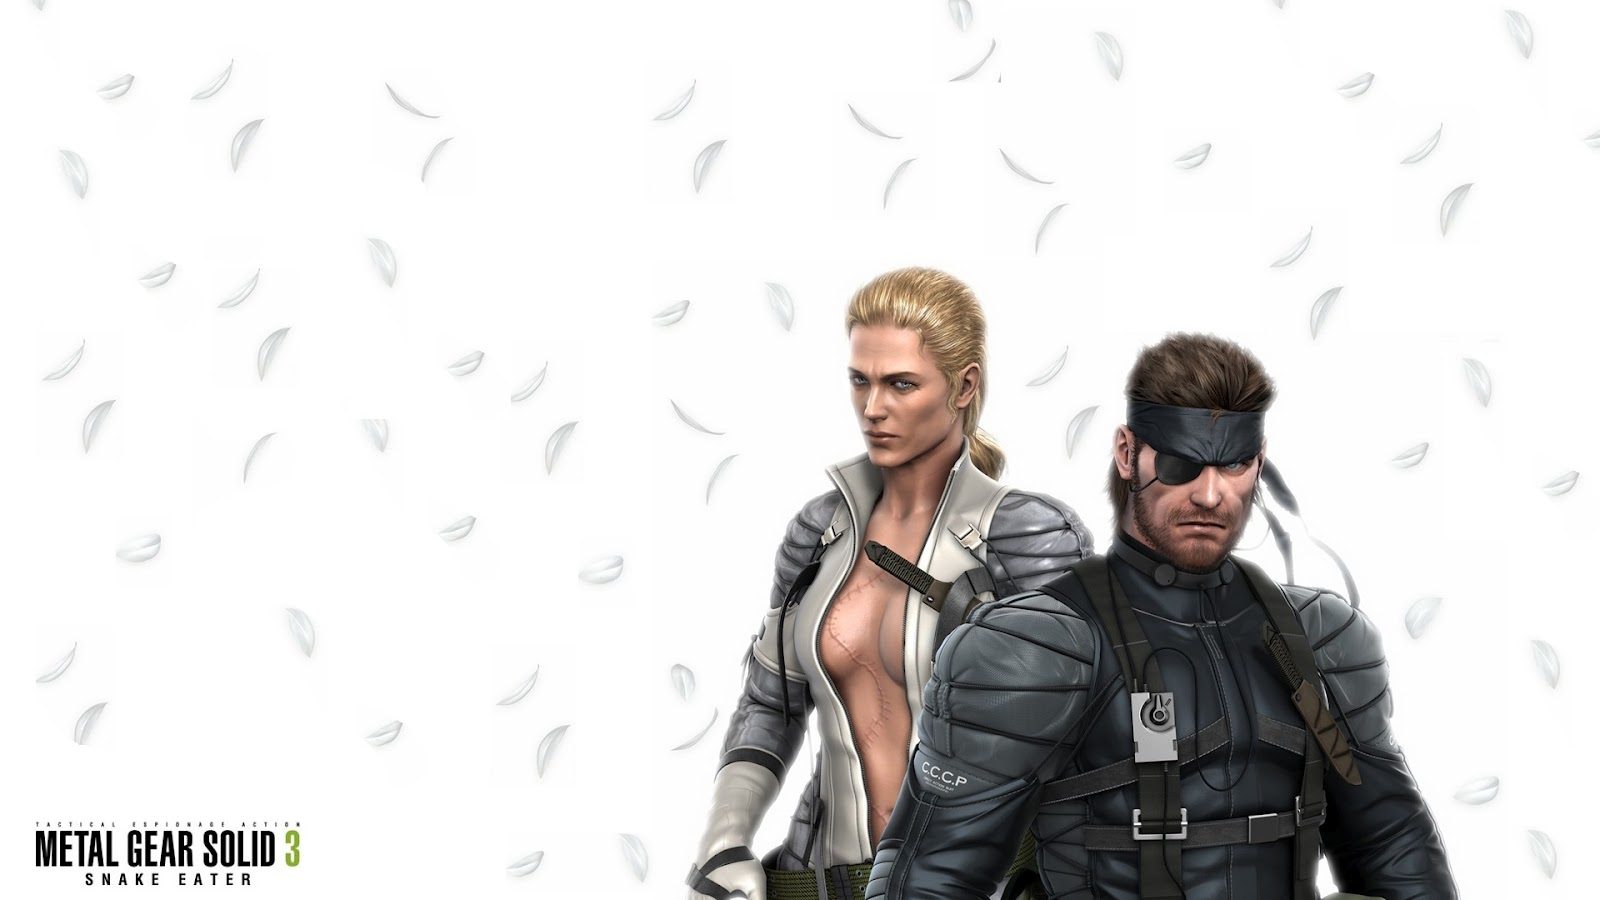 metal gear solid 3 snake eater  hd wallpaper  by outer heaven1974 d4ucbg7 Metal Gear Solid 4: Guns of the Patriots Wallpapers in HD